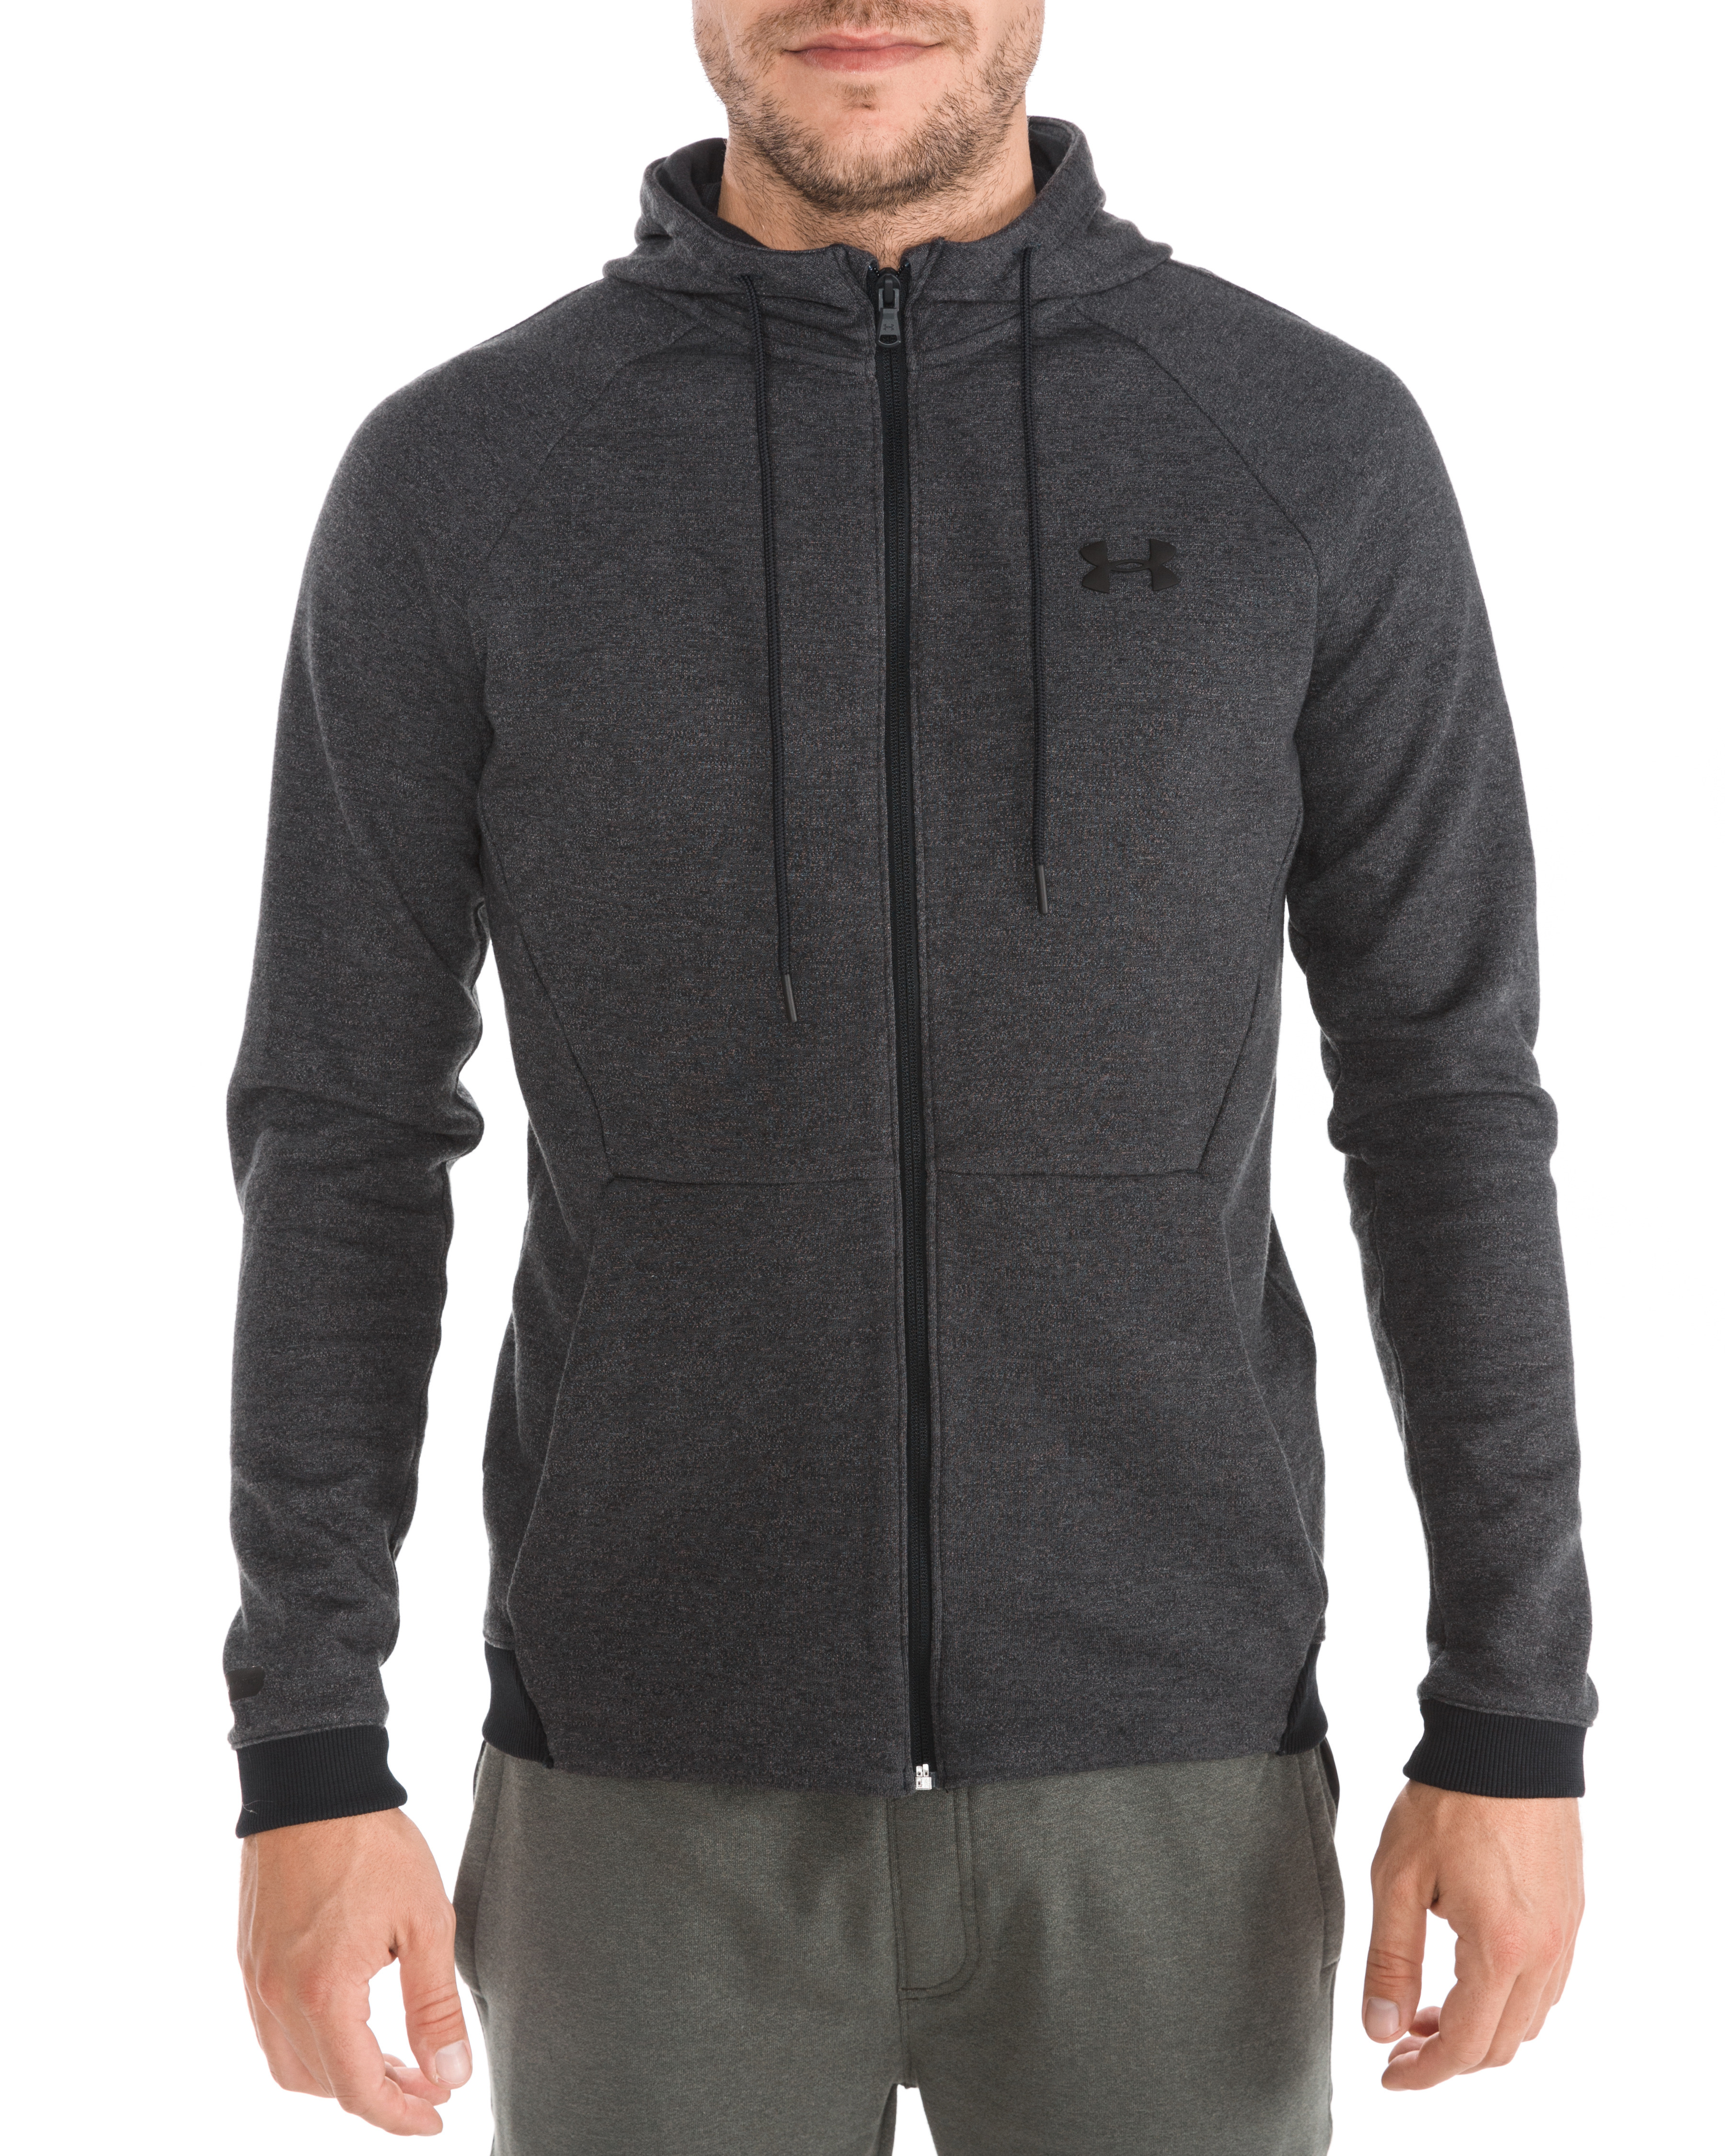 Under Armour Unstoppable 2X Sweatshirt 1320722 Črna Siva ... 06d34ed77d